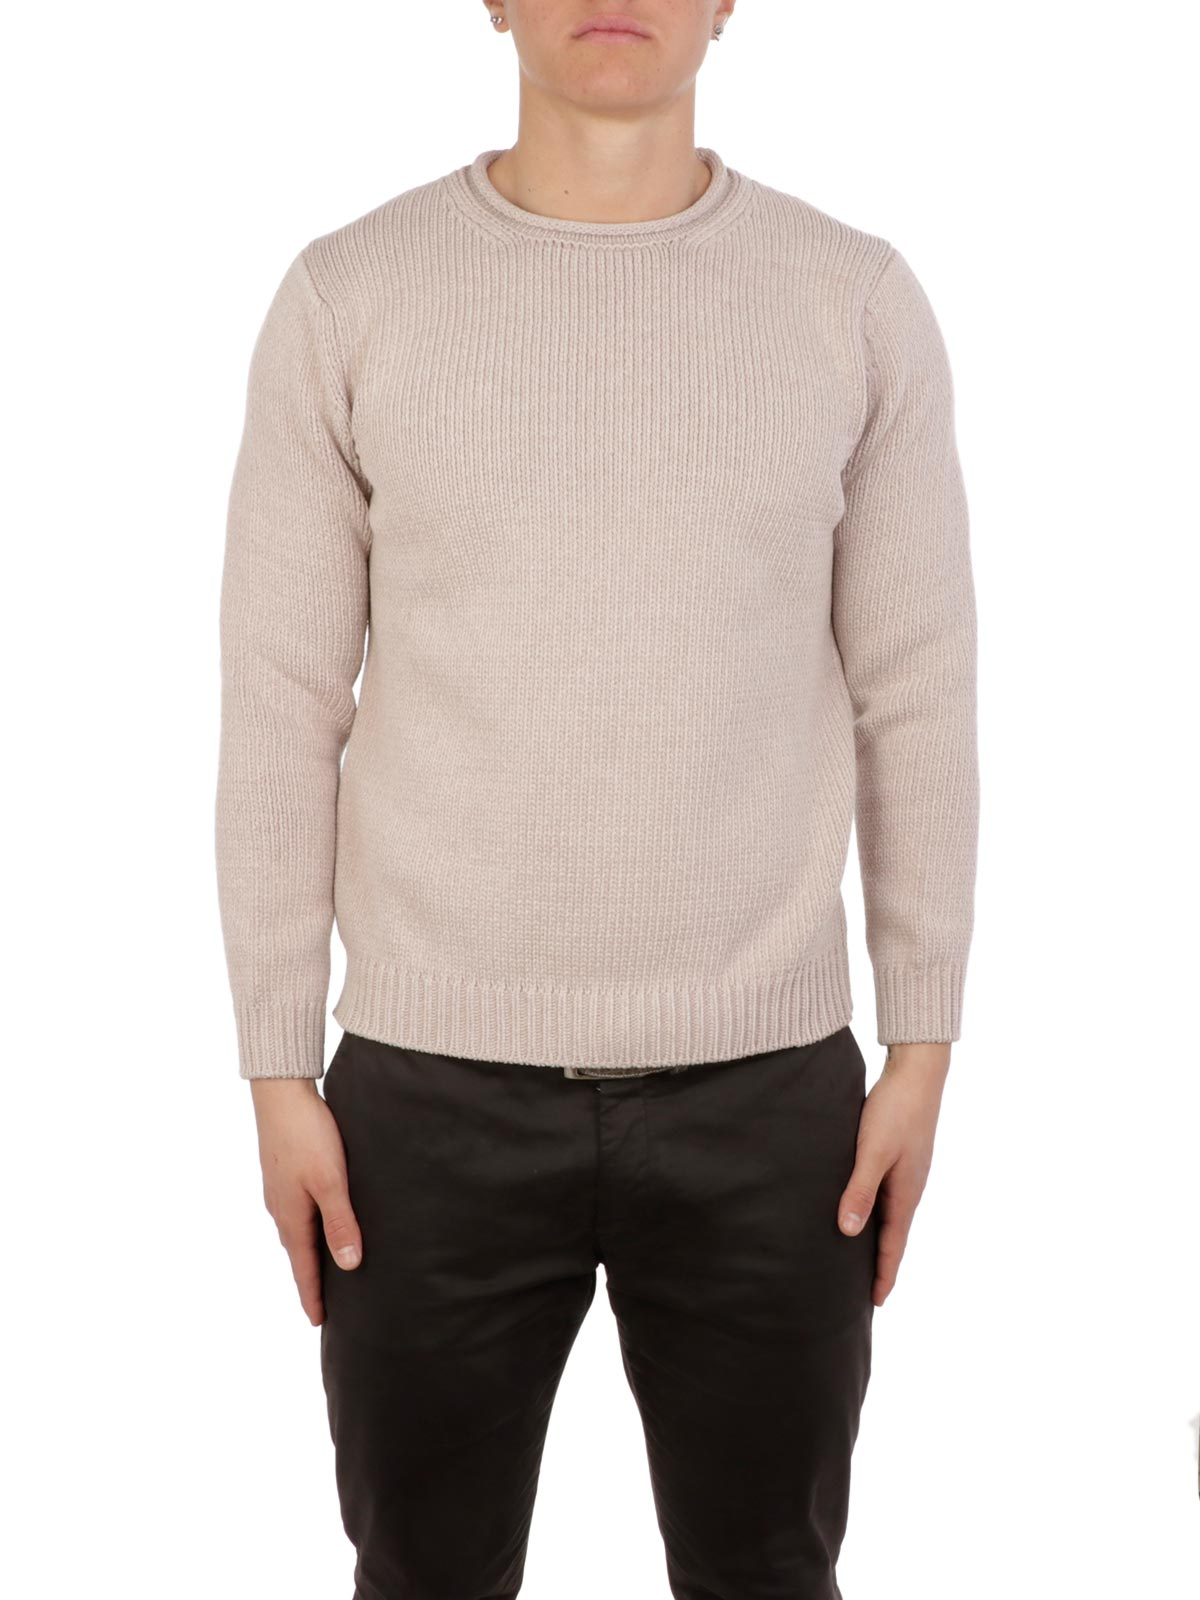 Picture of ALTEA | Men's Knitted Sweater